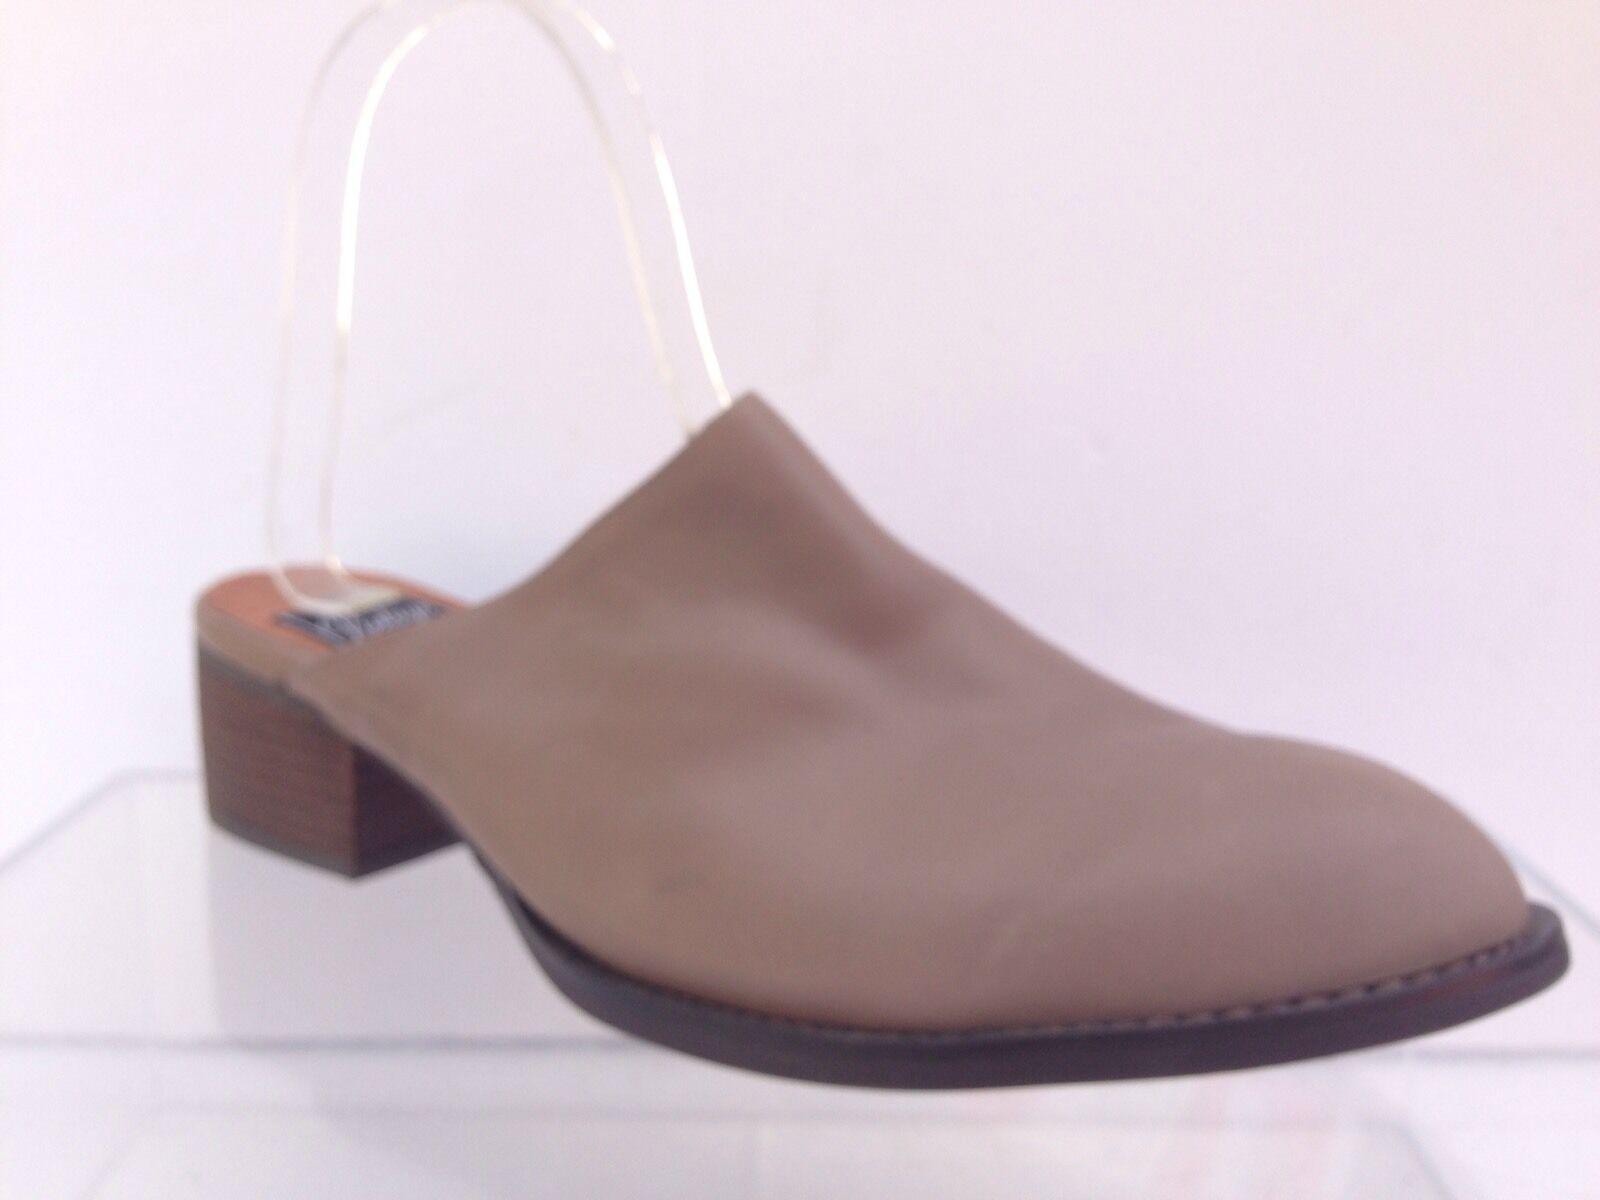 Jeffrey Campbell Vinton Mules Leather Shoe Size 10.5 Ankle Boot Bootie